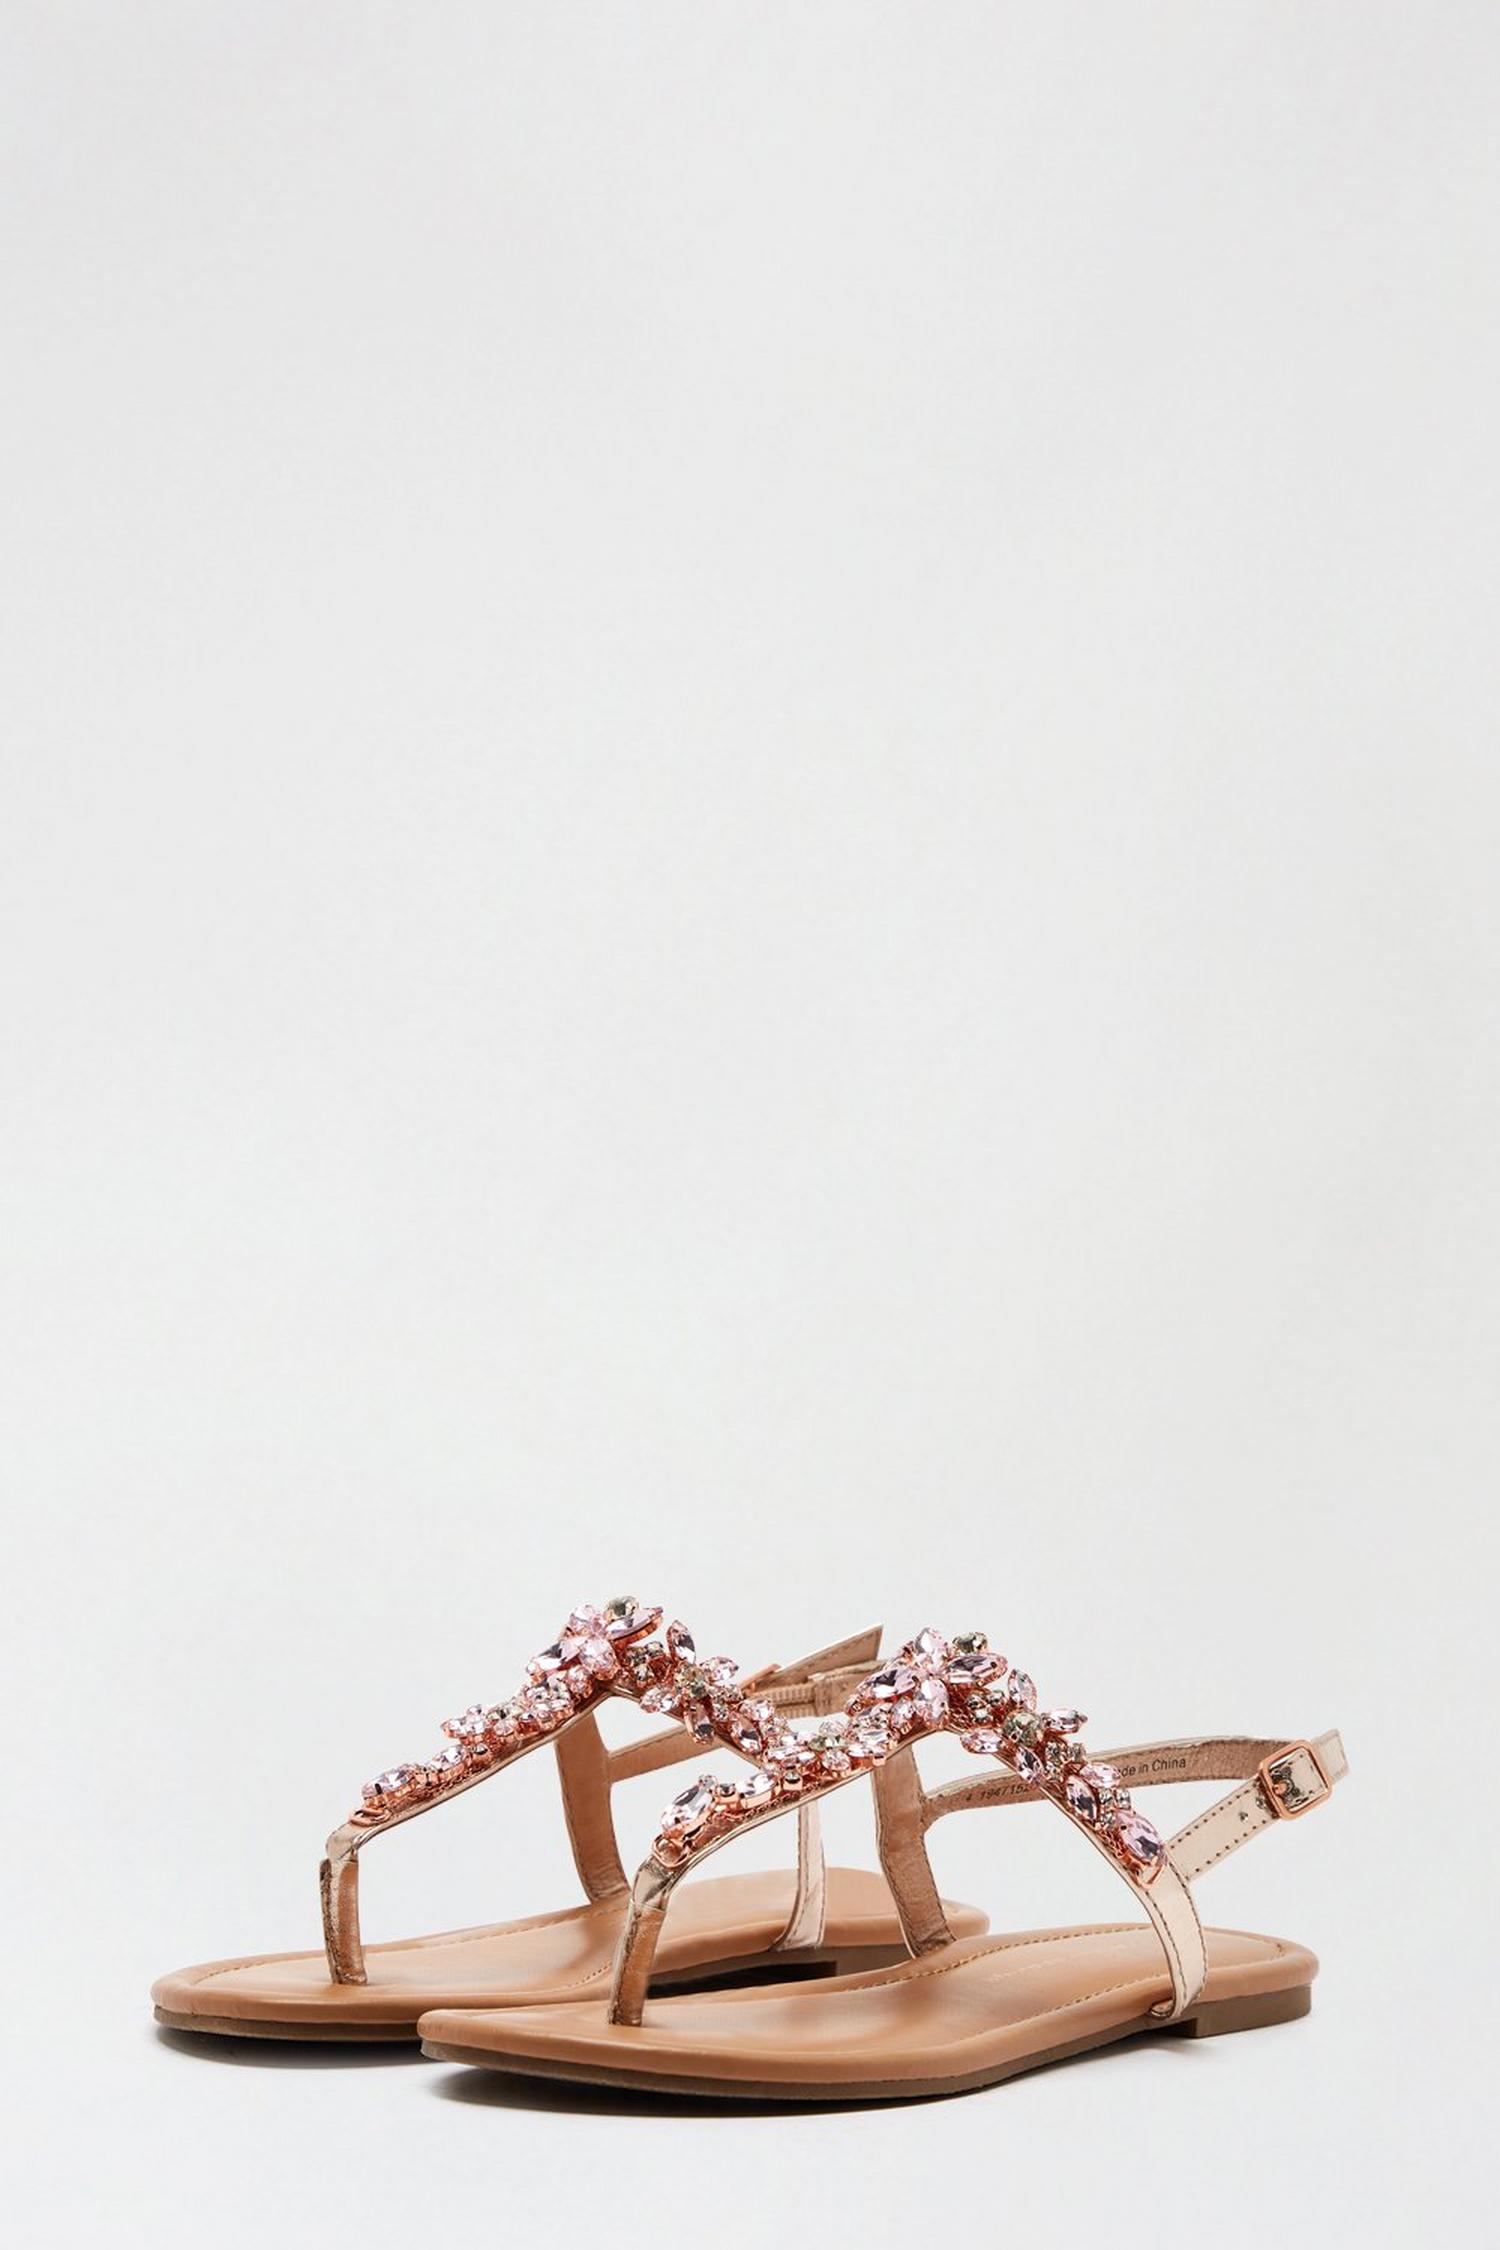 579 Rose Gold Flower Jewel Sandals image number 2